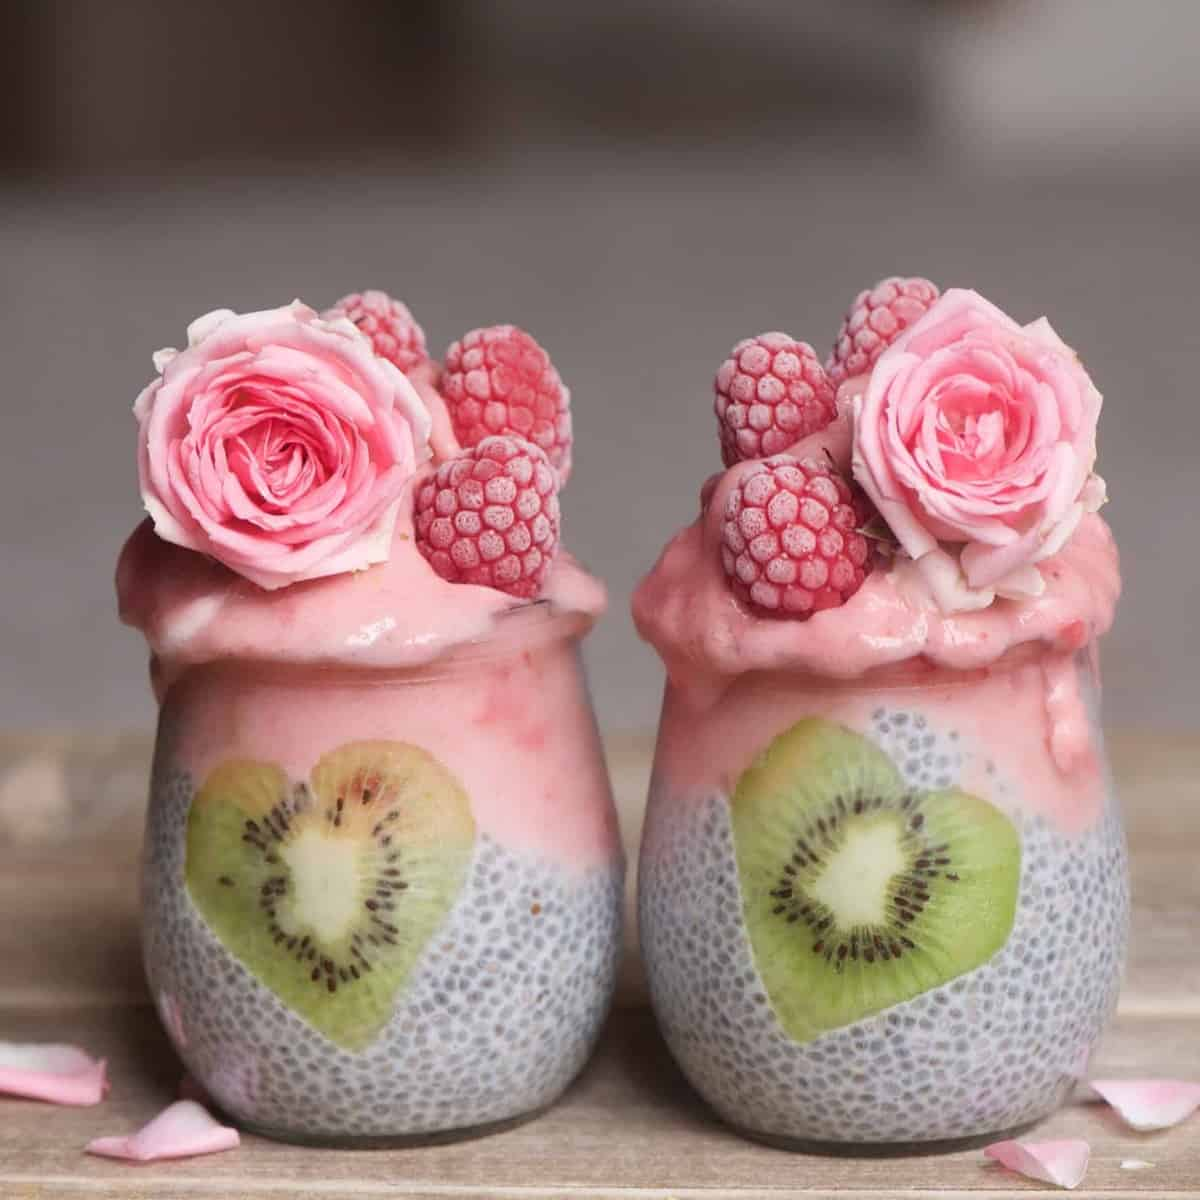 vegan pink detox smoothie topped chia pudding jar recipe with chia pudding nutrition info